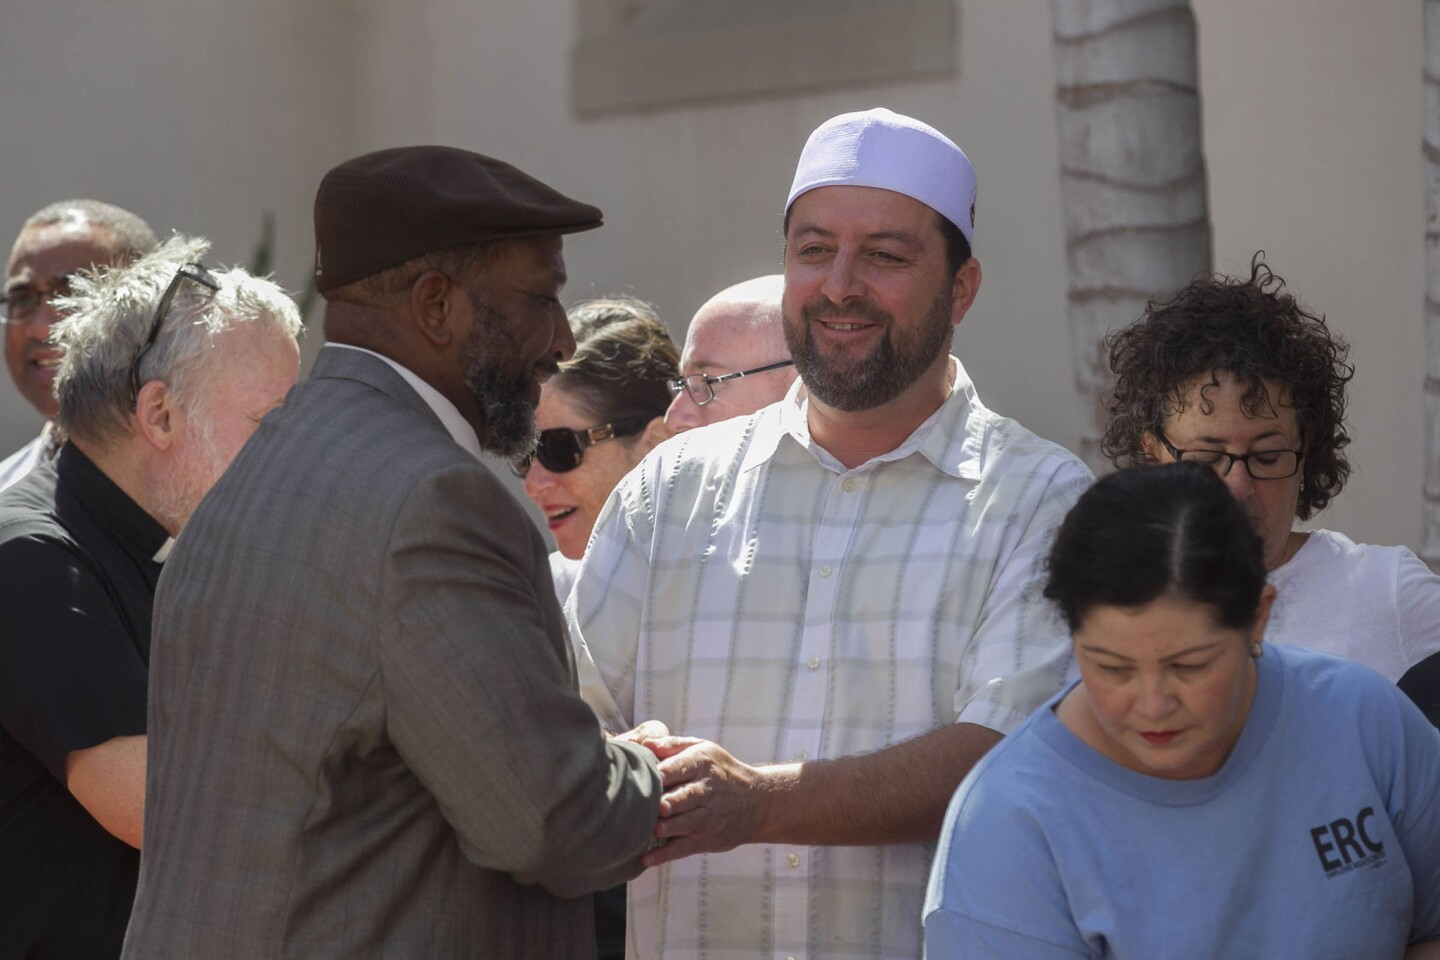 Imam Taha Hassane, right, of the Islamic Center of San Diego, greeted Bishop Cornelius Bowser, left, of the Charity Apostolic Church.